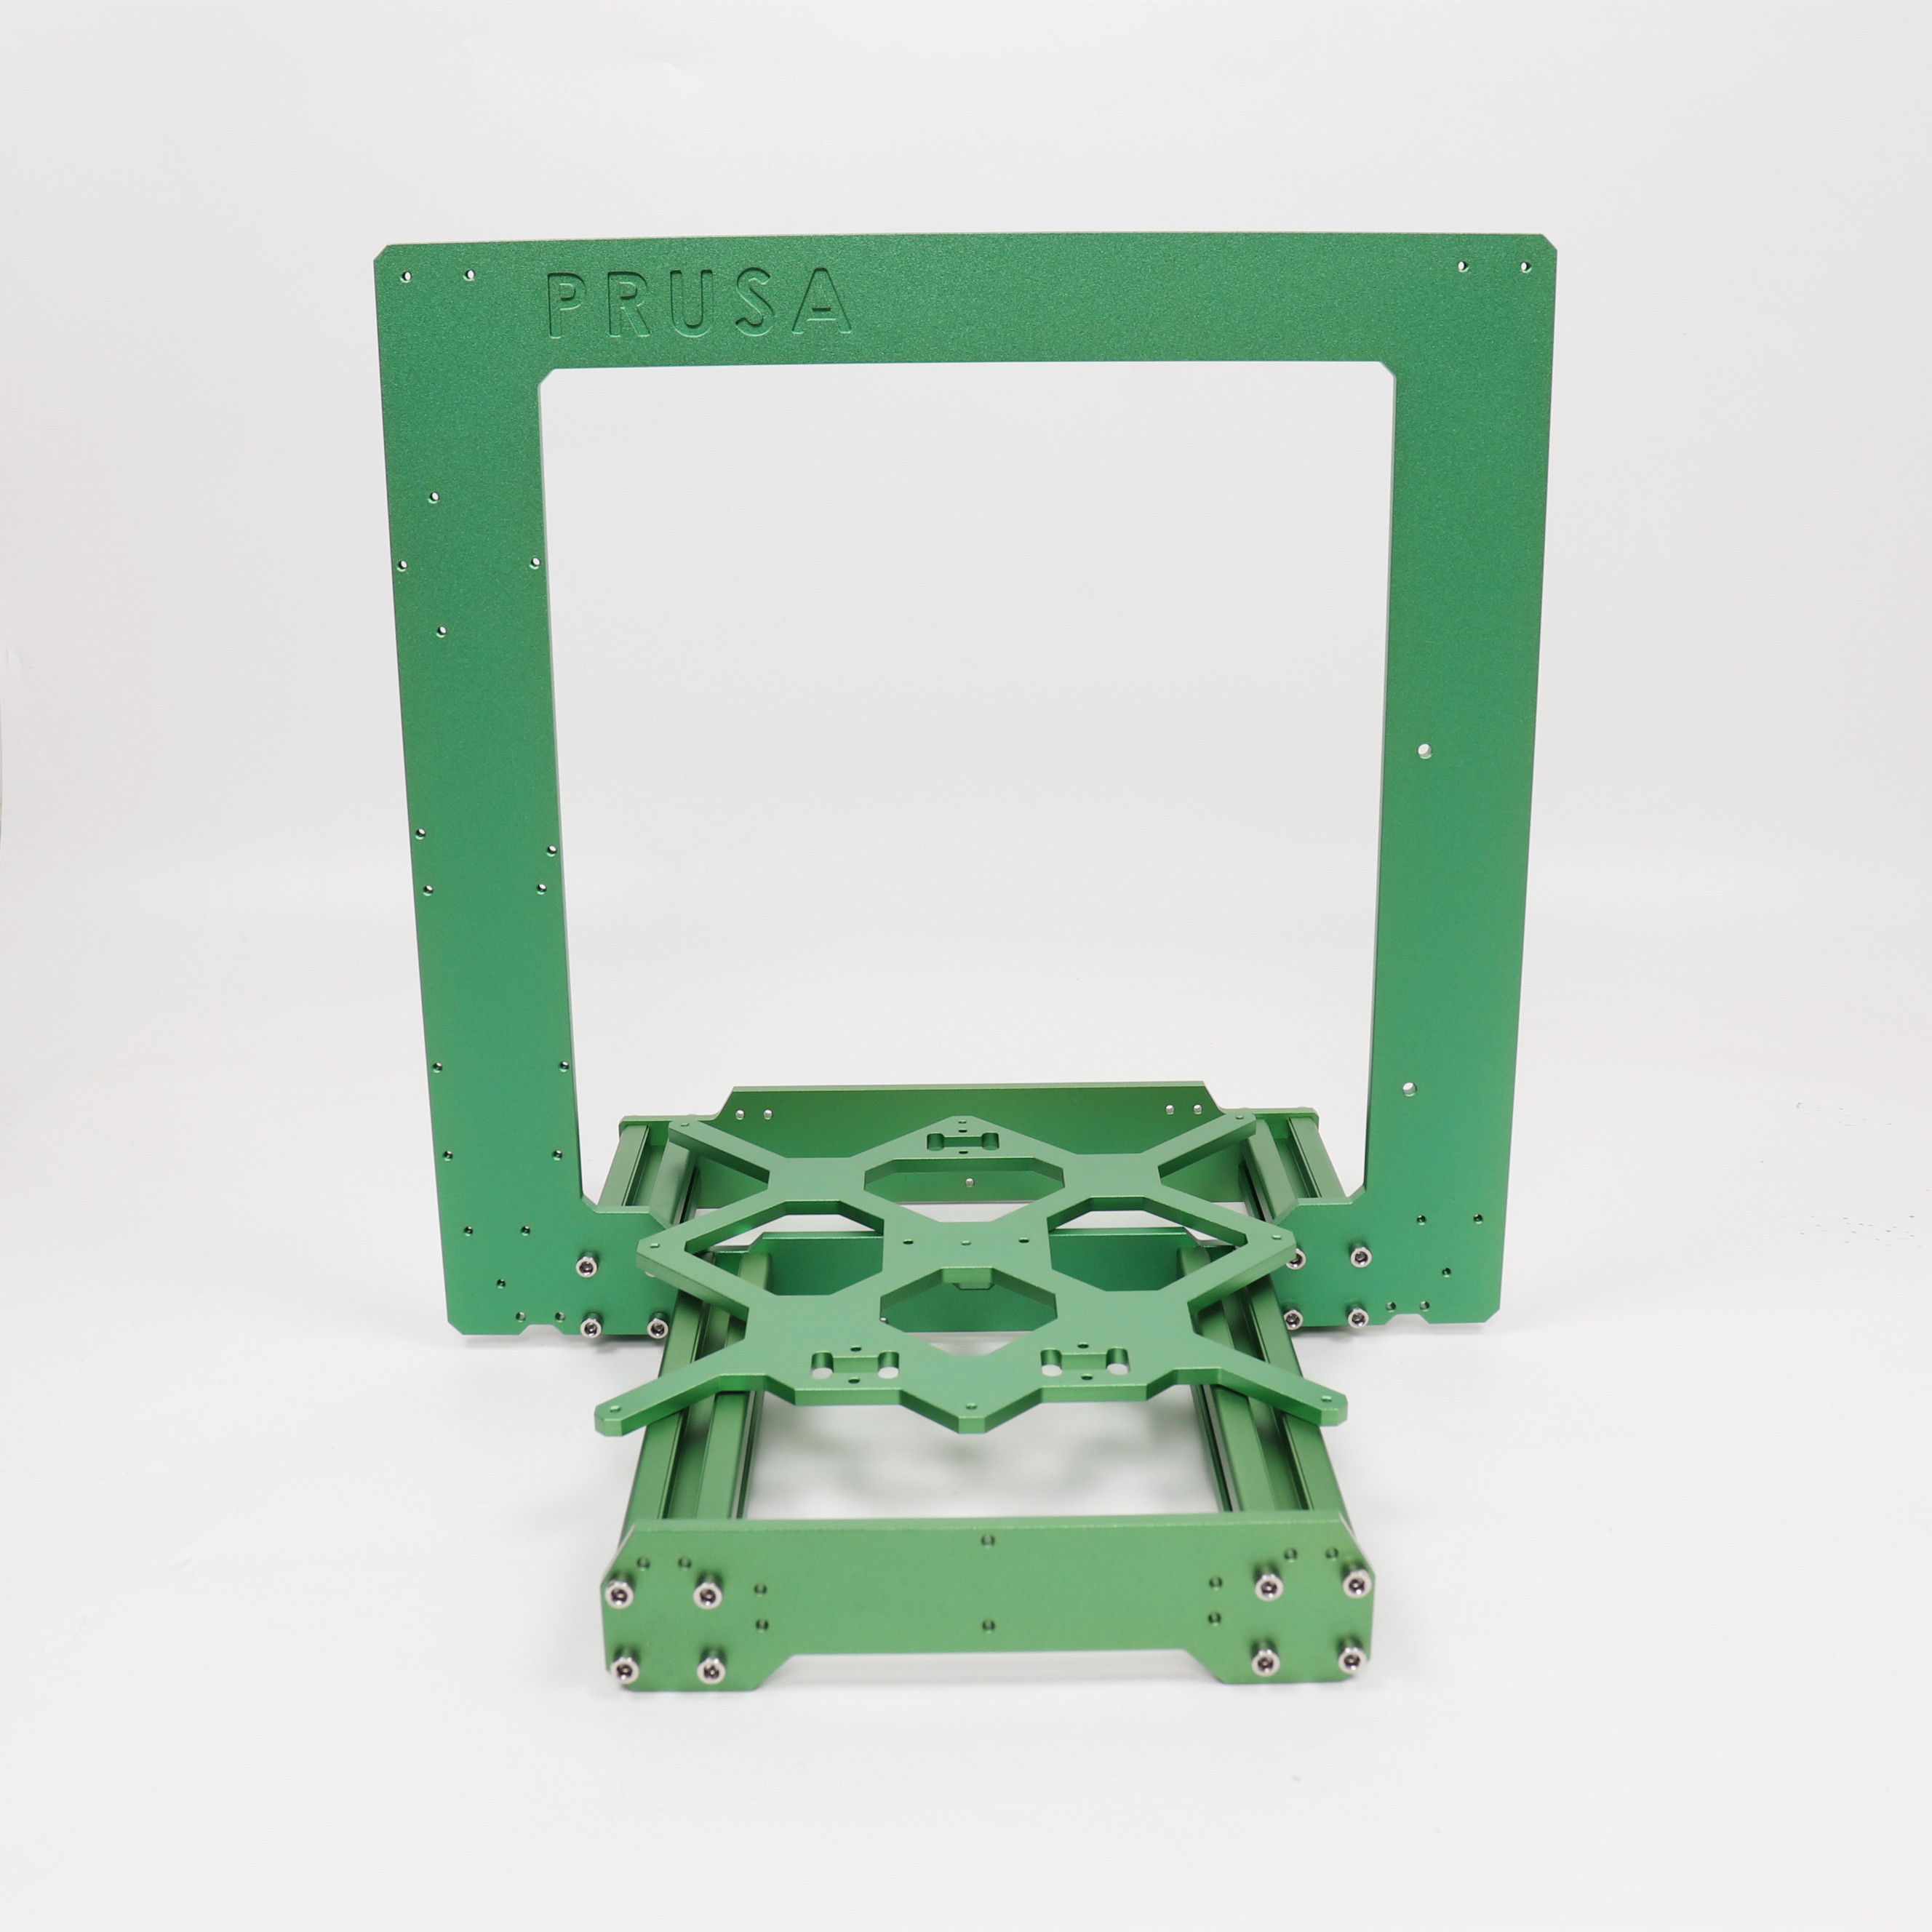 Blurolls Colorful Prusa I3 MK3/MK3S 3d Printer Frame Front And Rear Plate Y Carriage 3030 Extrusions